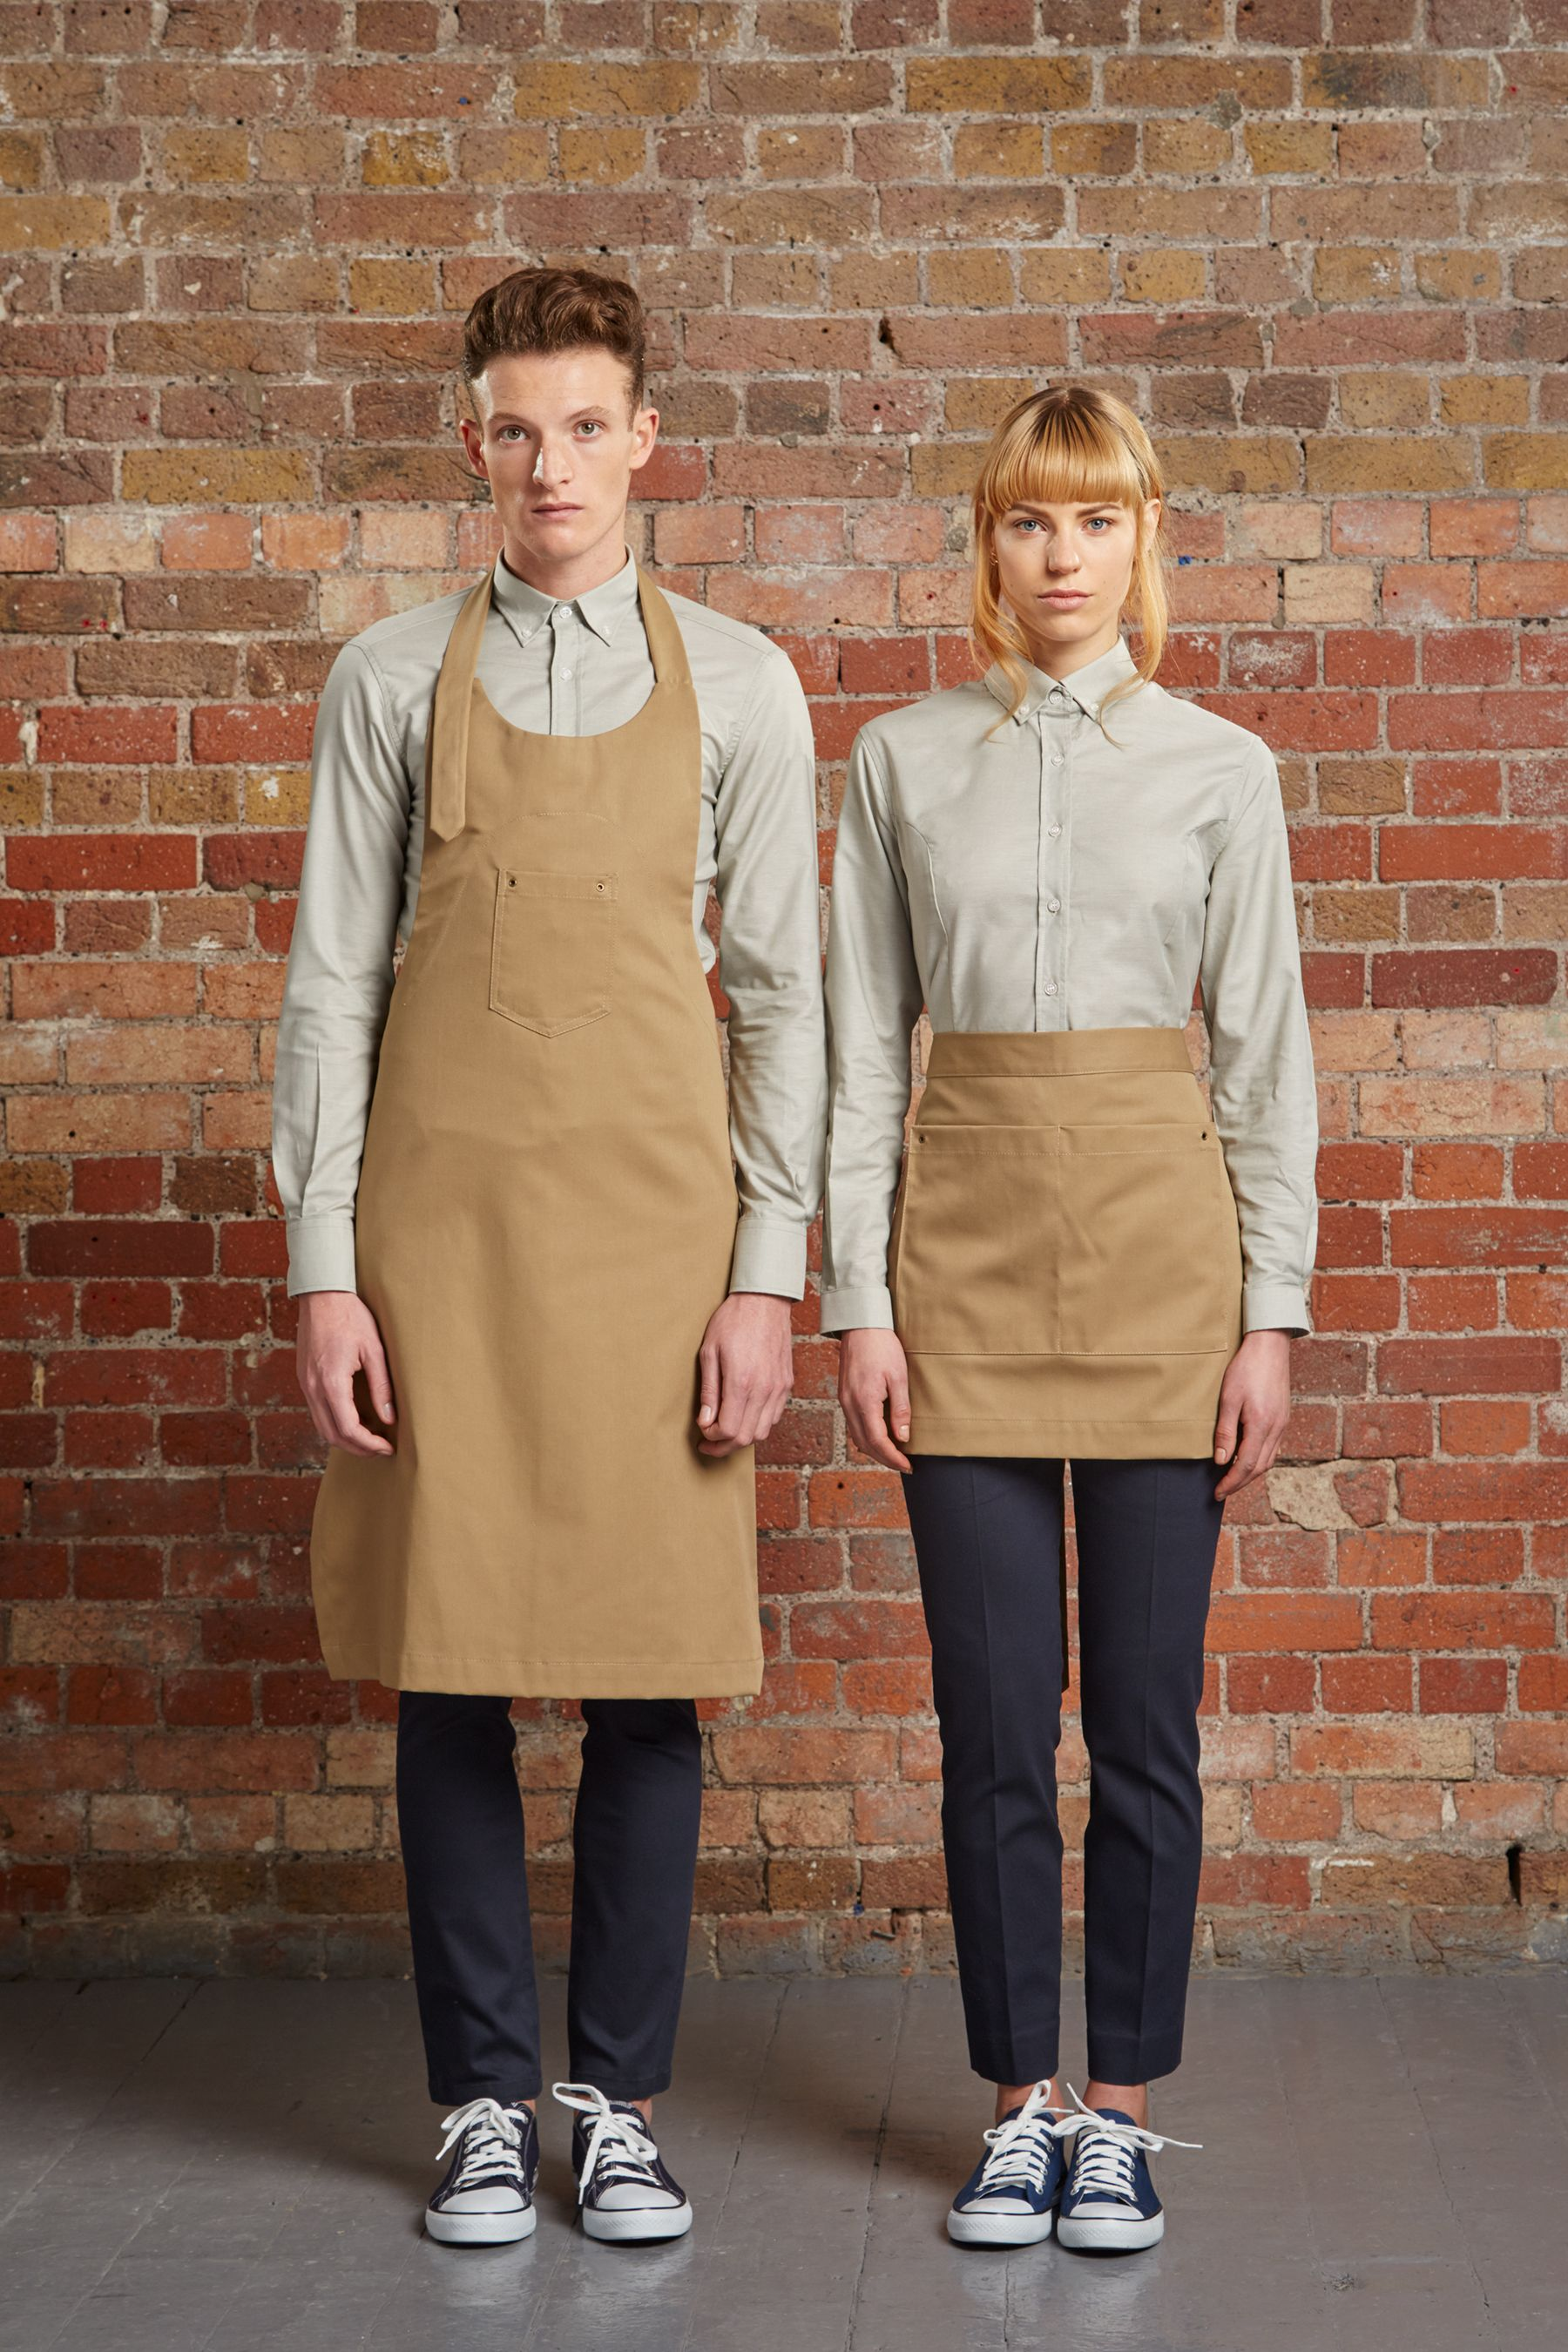 Farmhouse waiting staff pinteres for Funky hotels uk